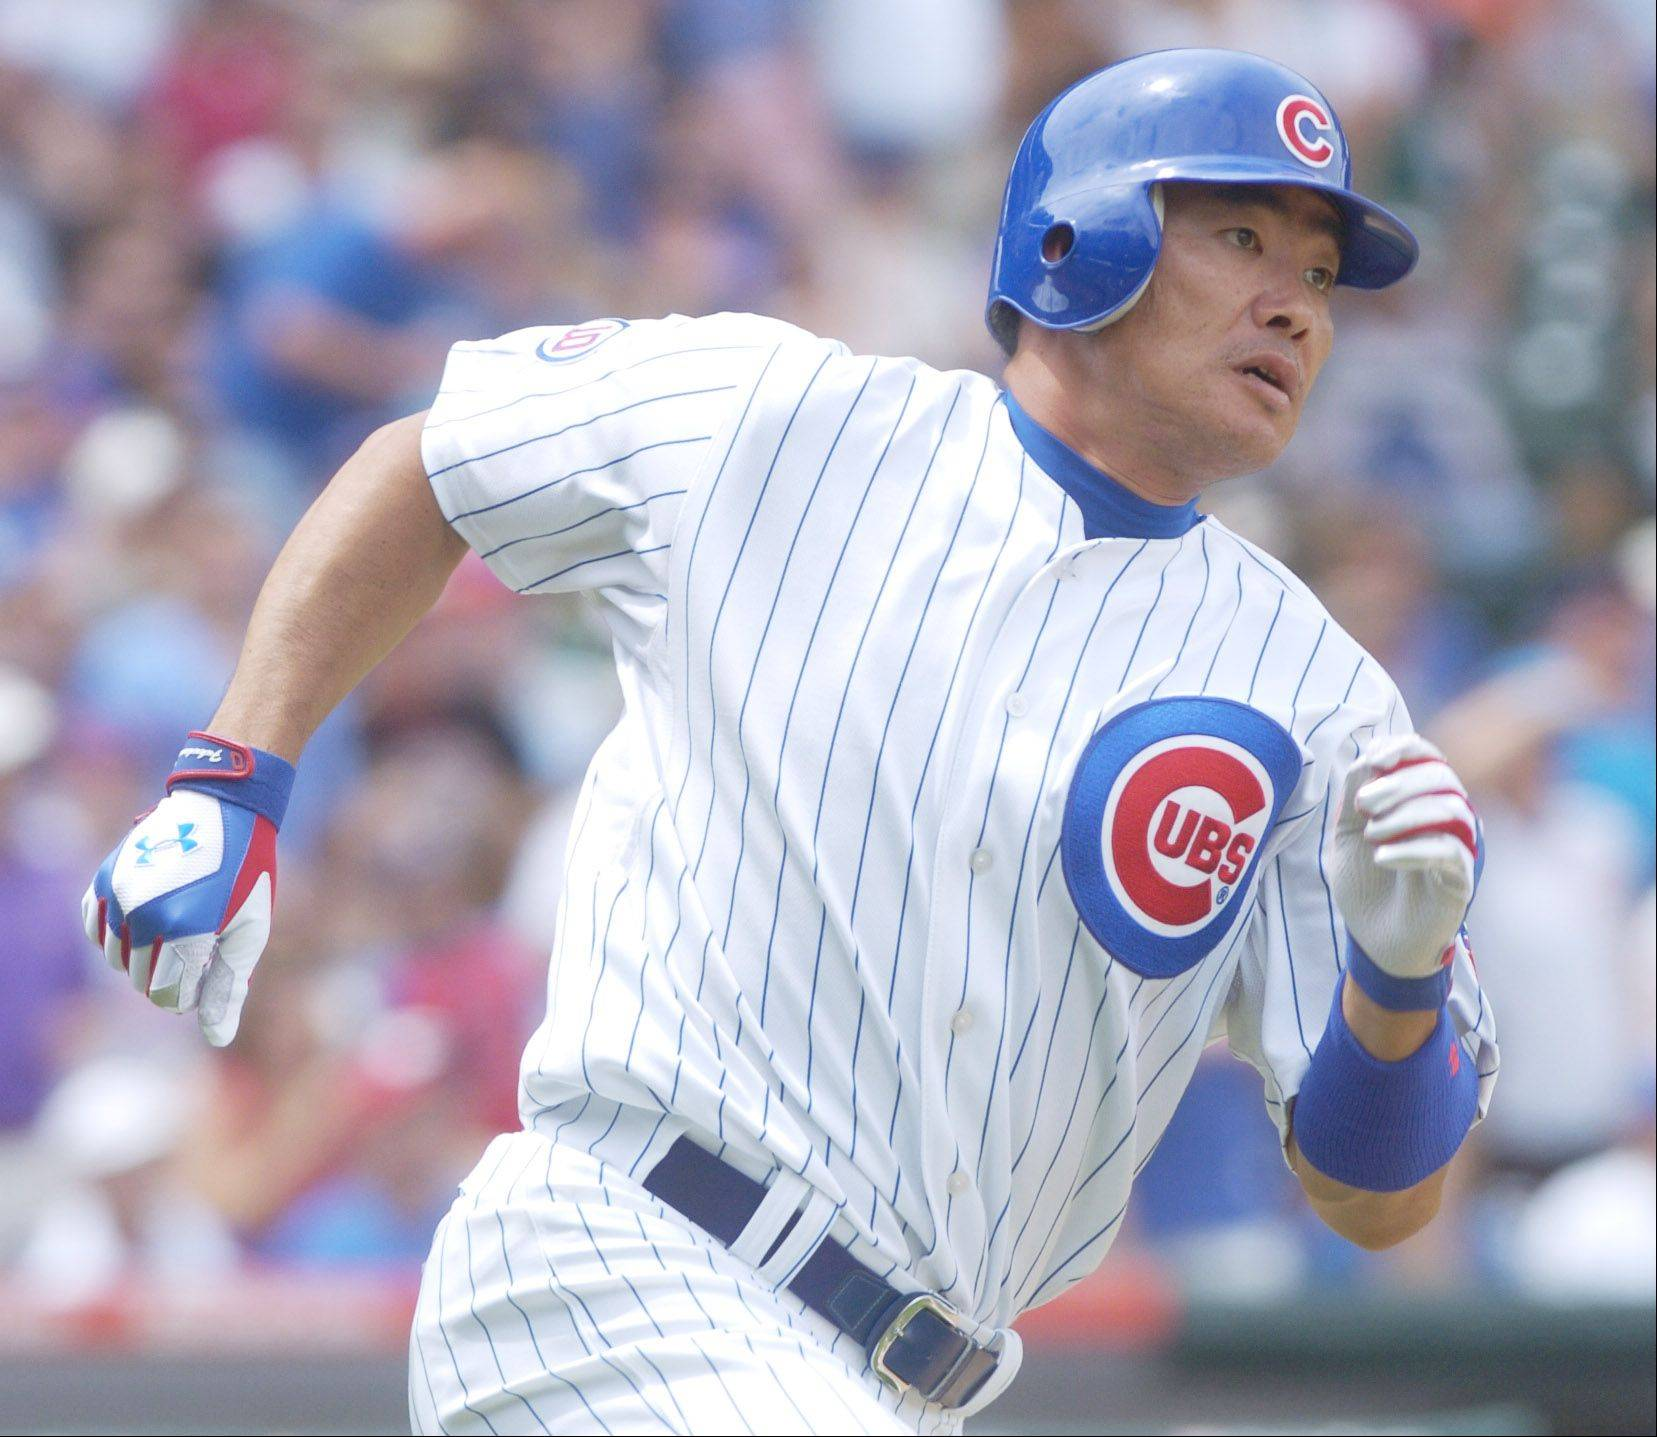 Kosuke Fukudome of the Cubs hustles after hitting a double during the third inning against the White Sox Sunday at Wrigley Field.